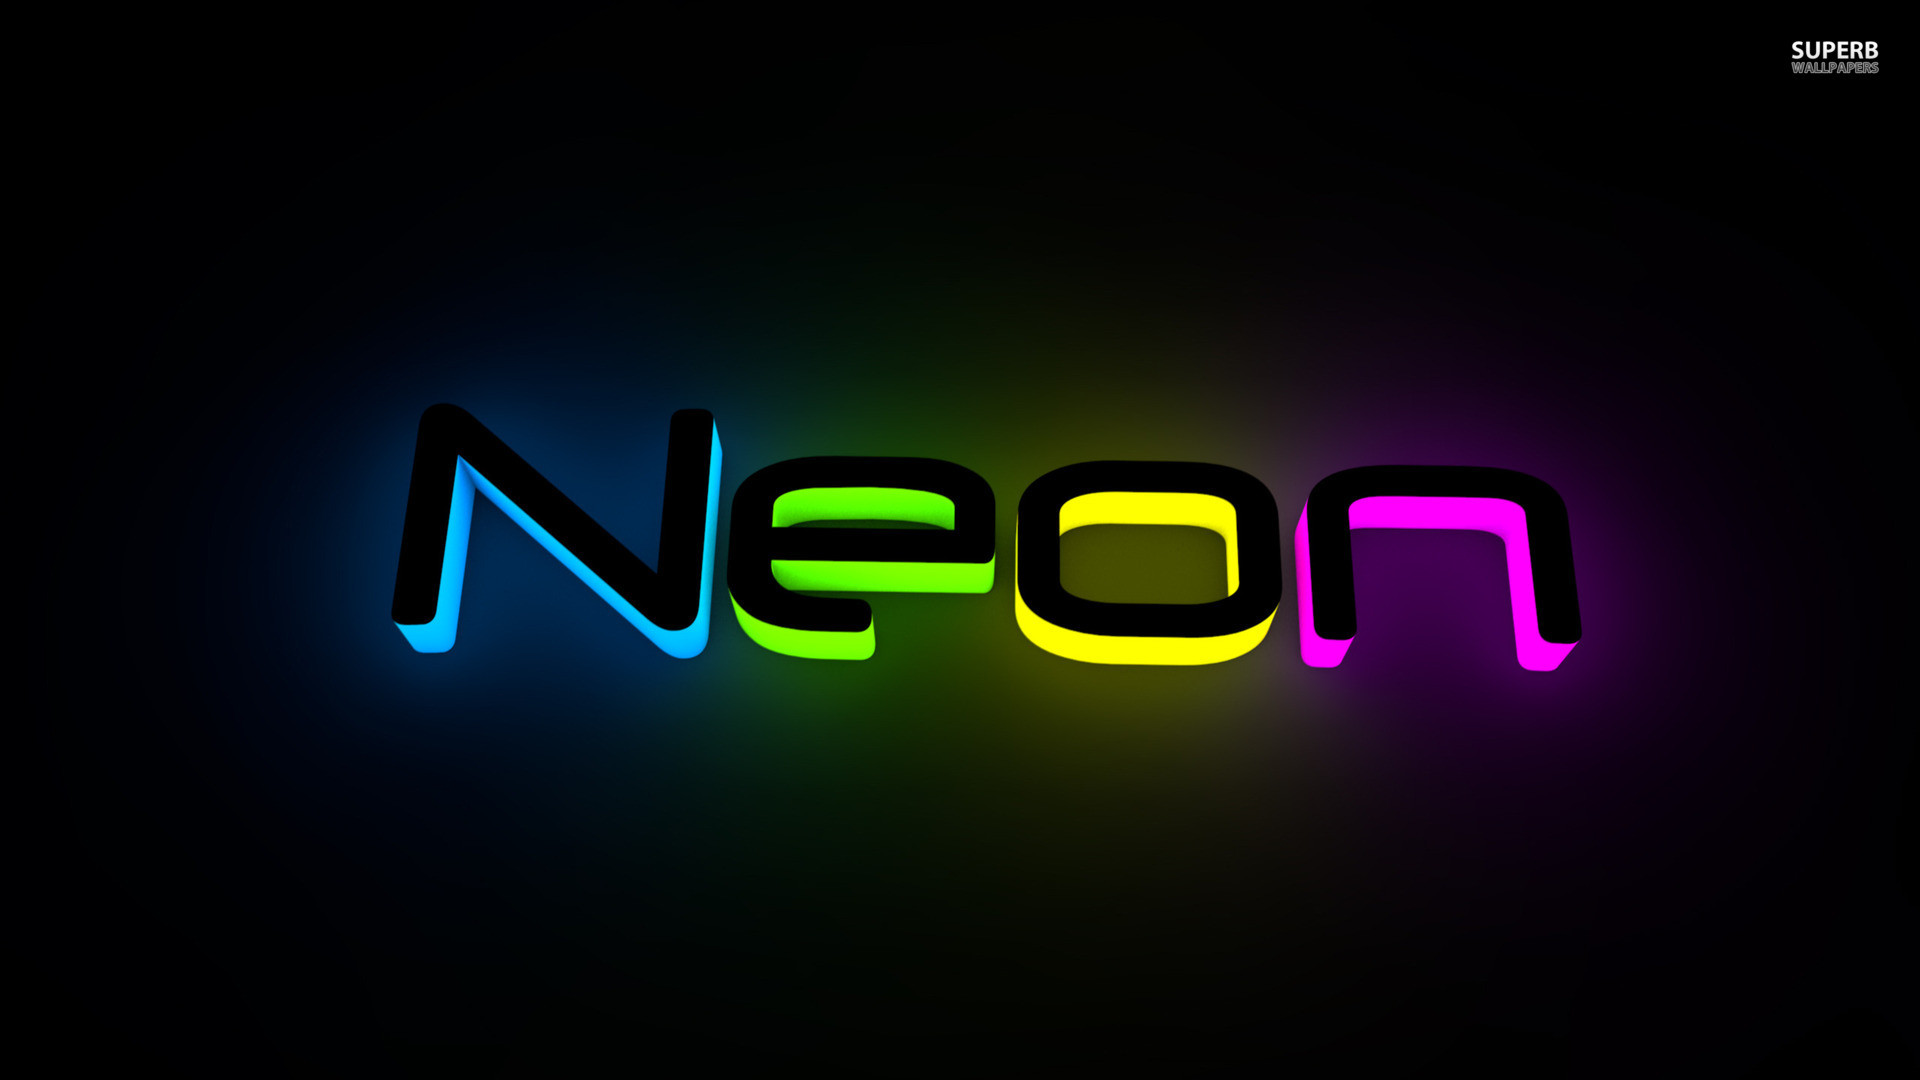 Wallpapers And Backgrounds: Black/Neon/White Wallpapers | Neon | Pinterest  | White wallpaper, Neon wallpaper and Wallpaper